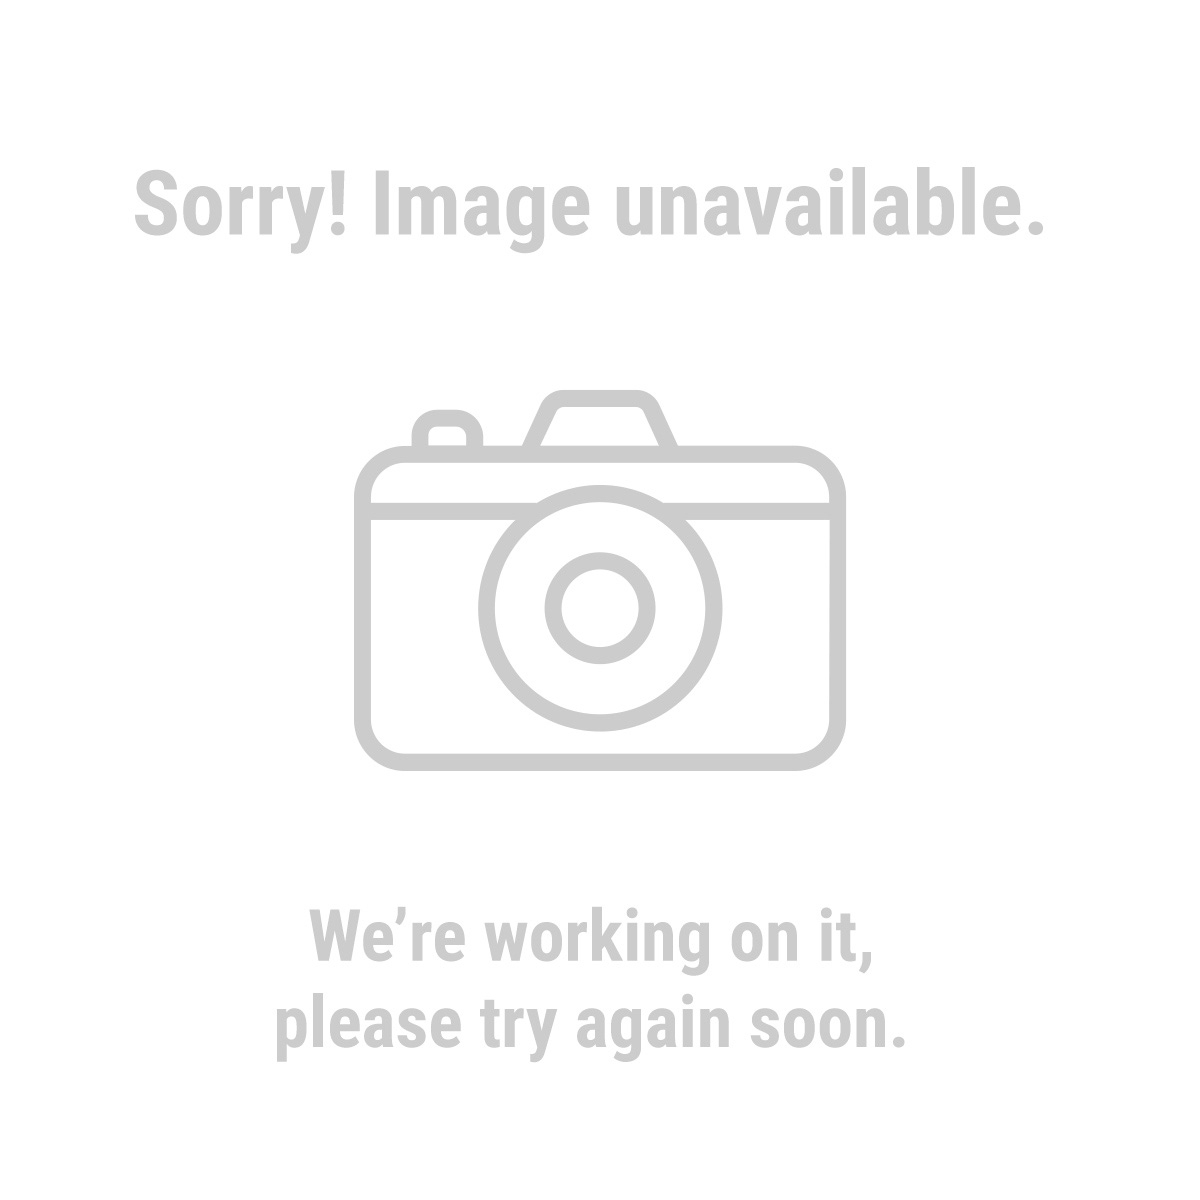 PREDATOR 69729 212cc, 4000 Watts Max/3200 Watts Rated Portable Generator